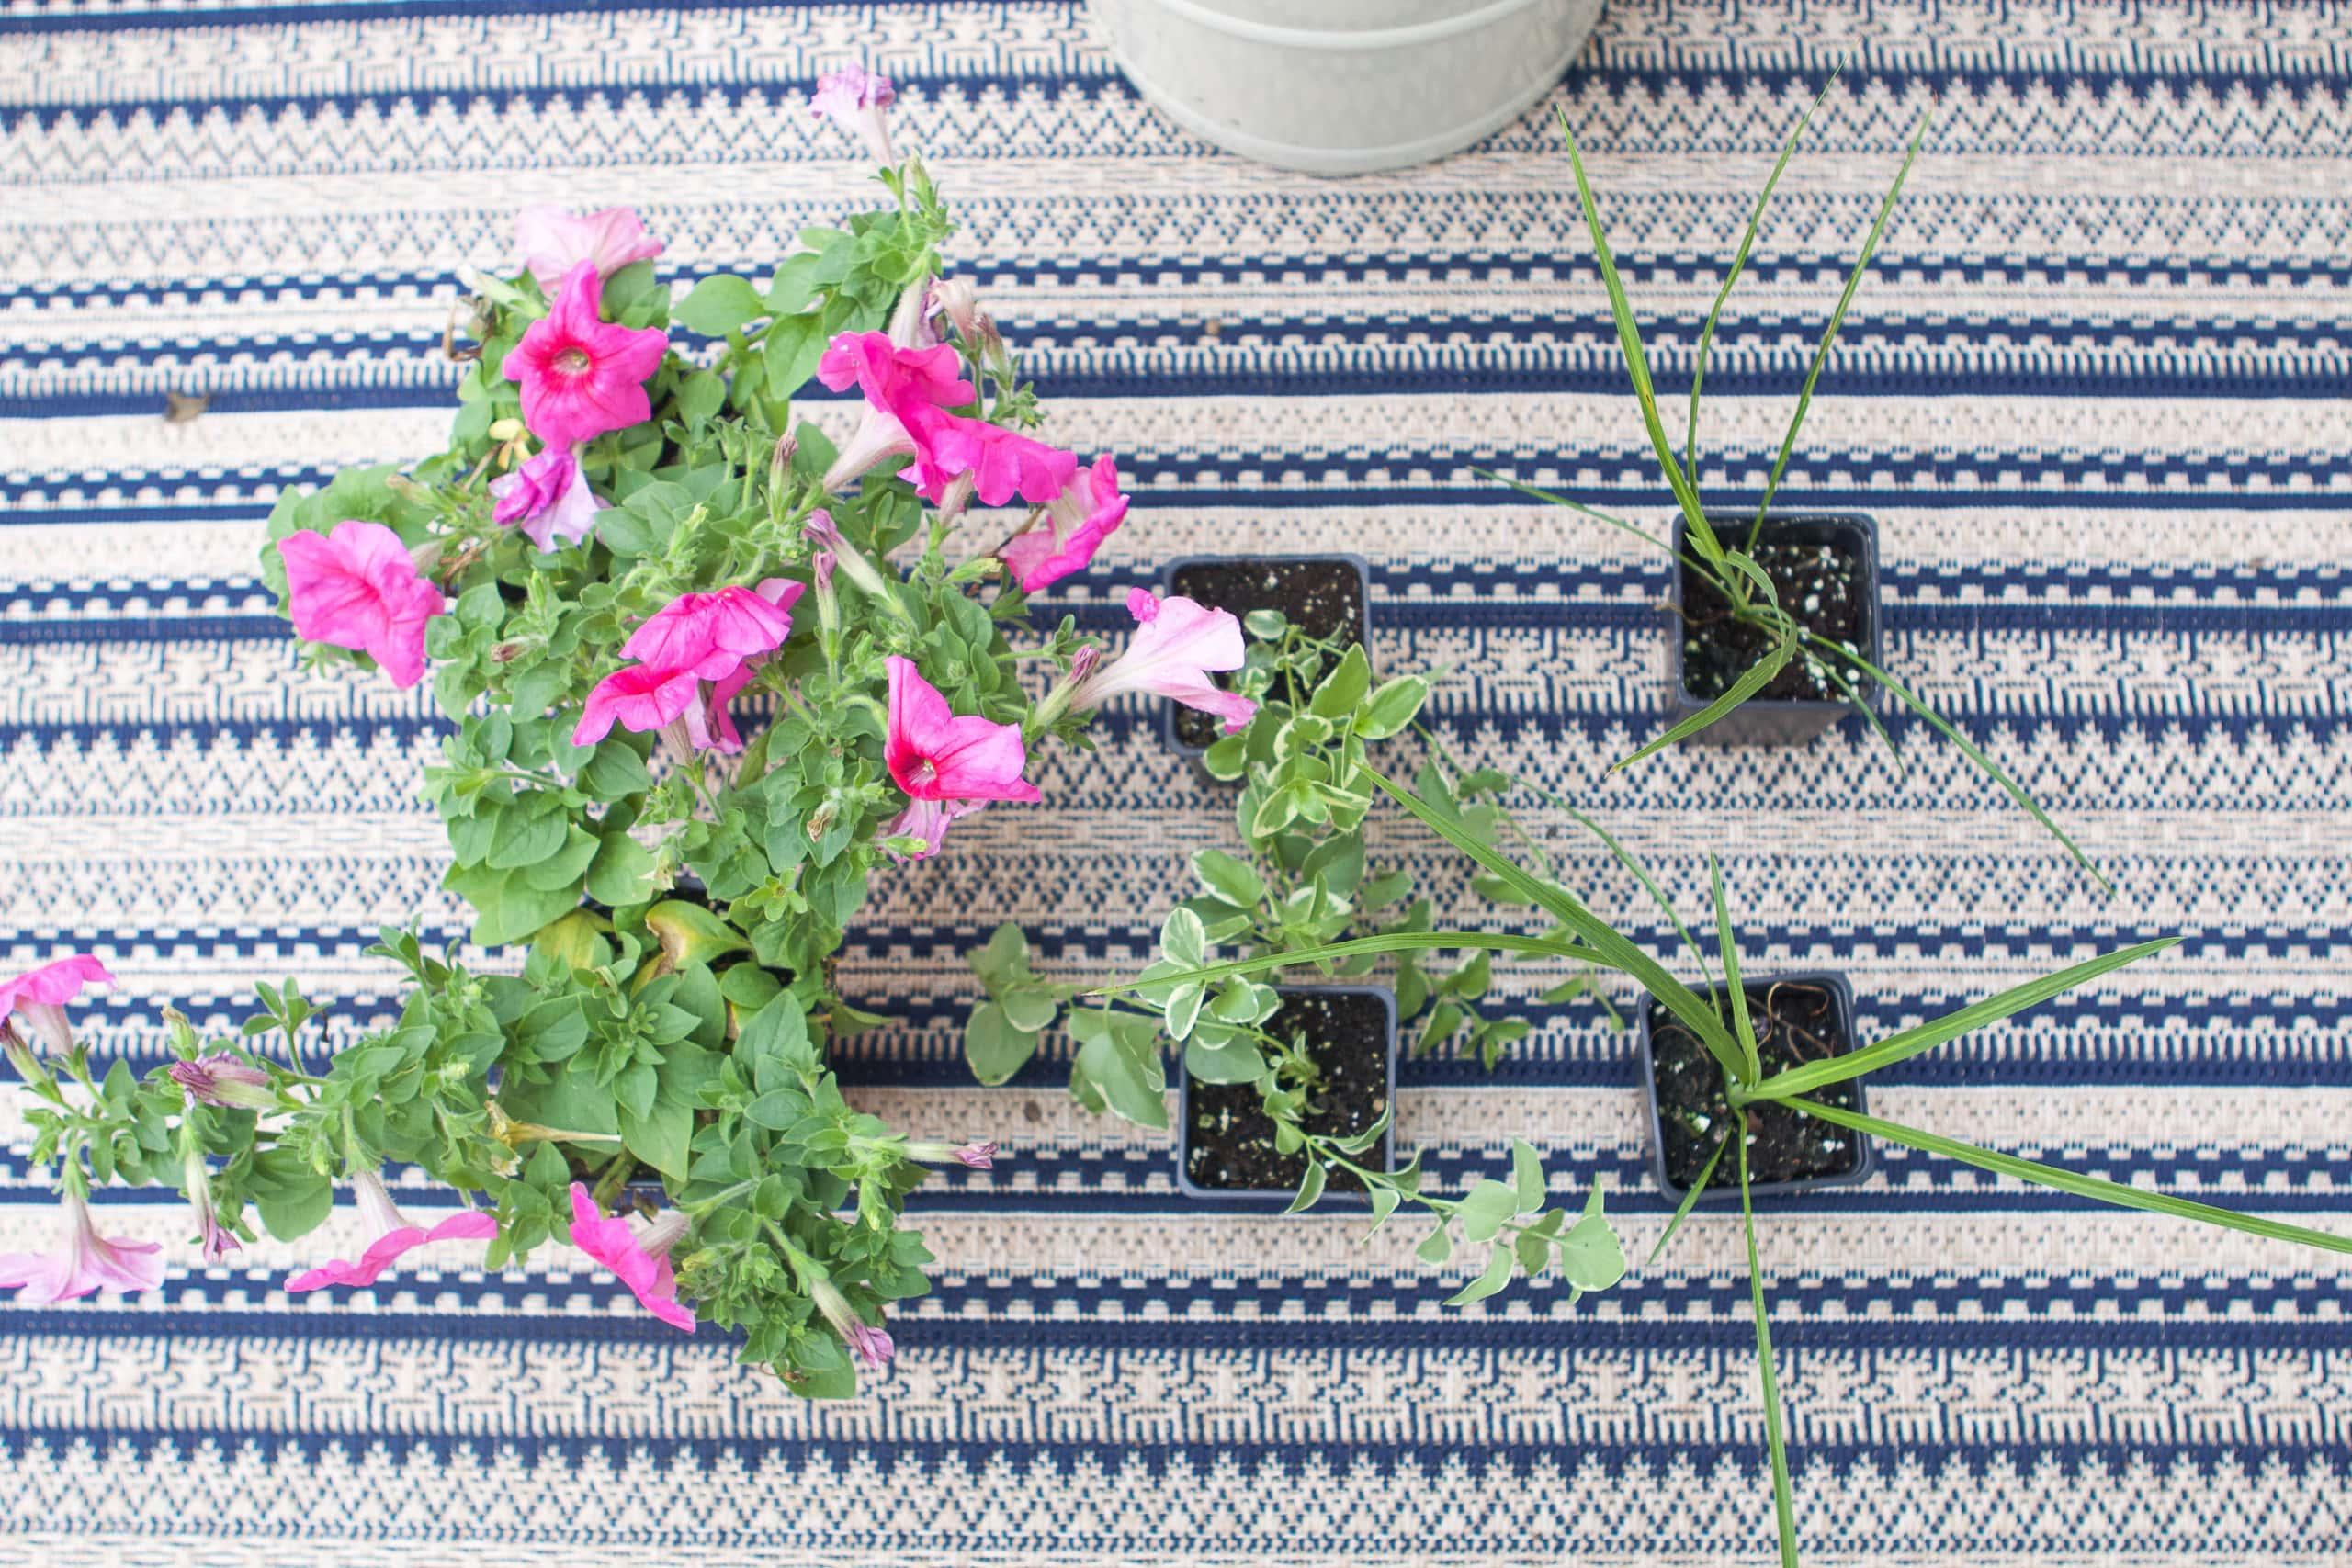 How to plant flowers in a planter